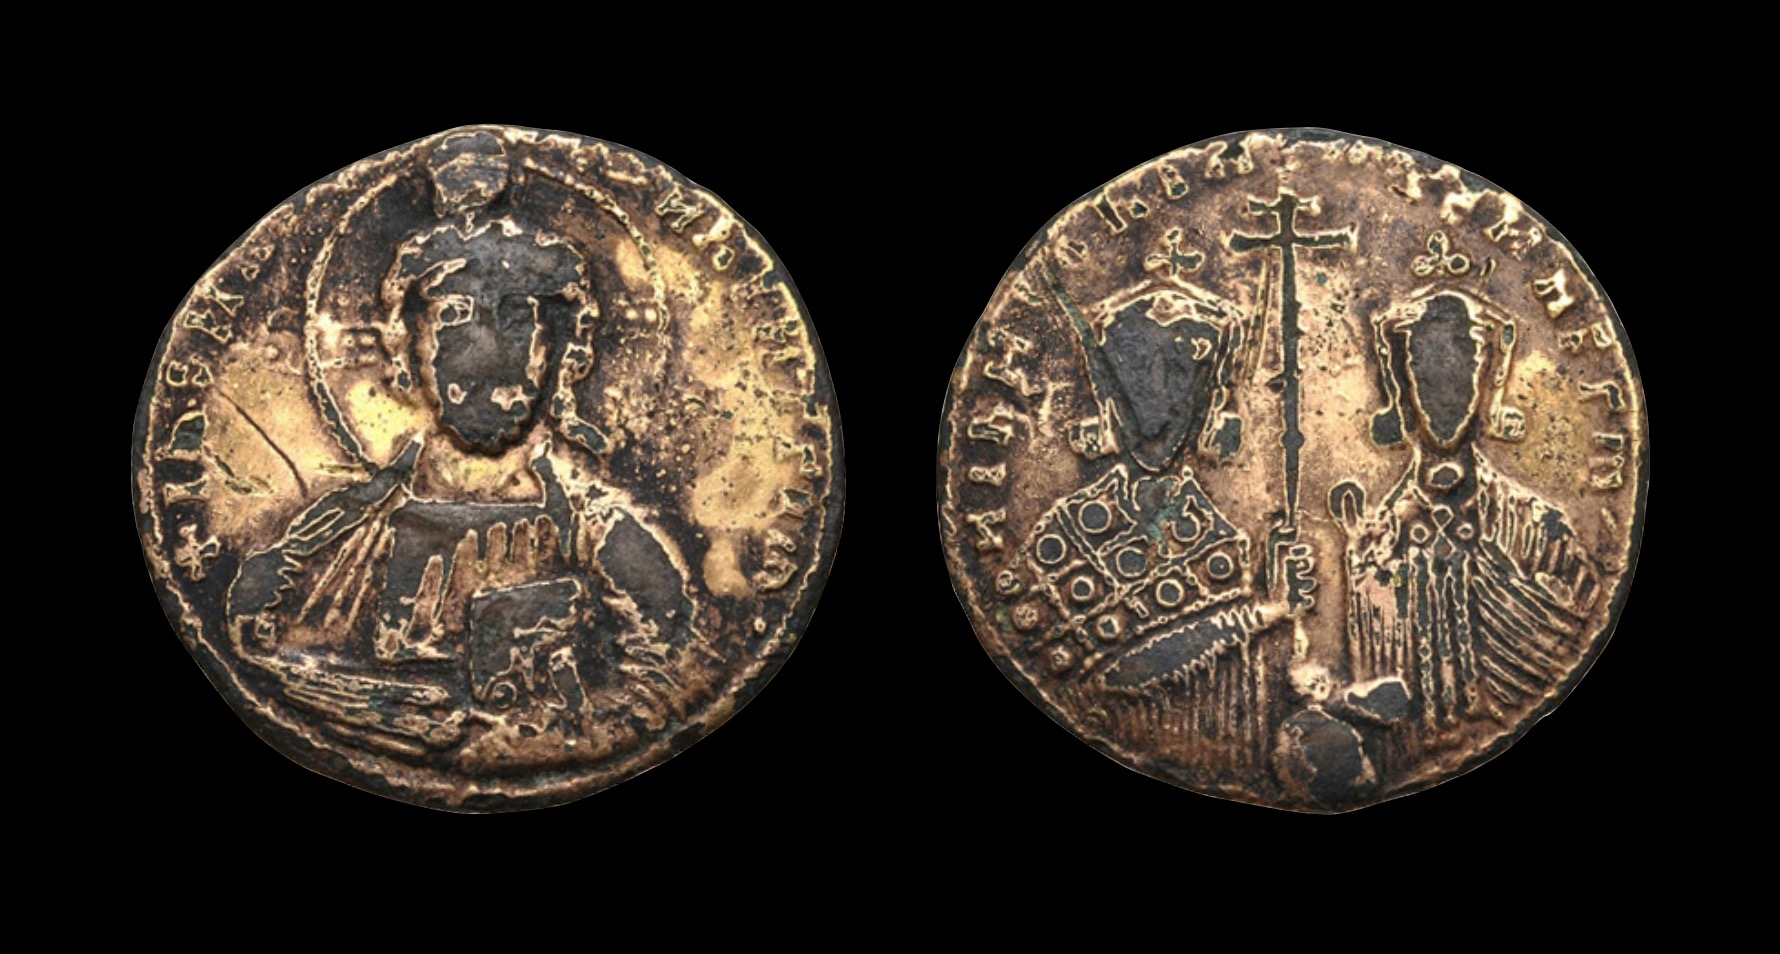 Nicephorus II. (963-969) w/ Basil II. Fourrée gold solidus. Obv: + IhS XΓS RЄX RЄGNANTIhM, Bust of Christ facing, with decorated nimbus, wearing pallium and colobium, raising r. hand in benediction and holding Book of Gospels in l. hand Rev. NICHFOR'CE bASIL' A•Ч• ÇÇ b R', Busts facing of Nicephorus II, with short beard, on l., wearing crown and loros, and Basil II, beardless on r., wearing crown and chlamys, holding long patriarchal cross between them. 2.87g 20mm